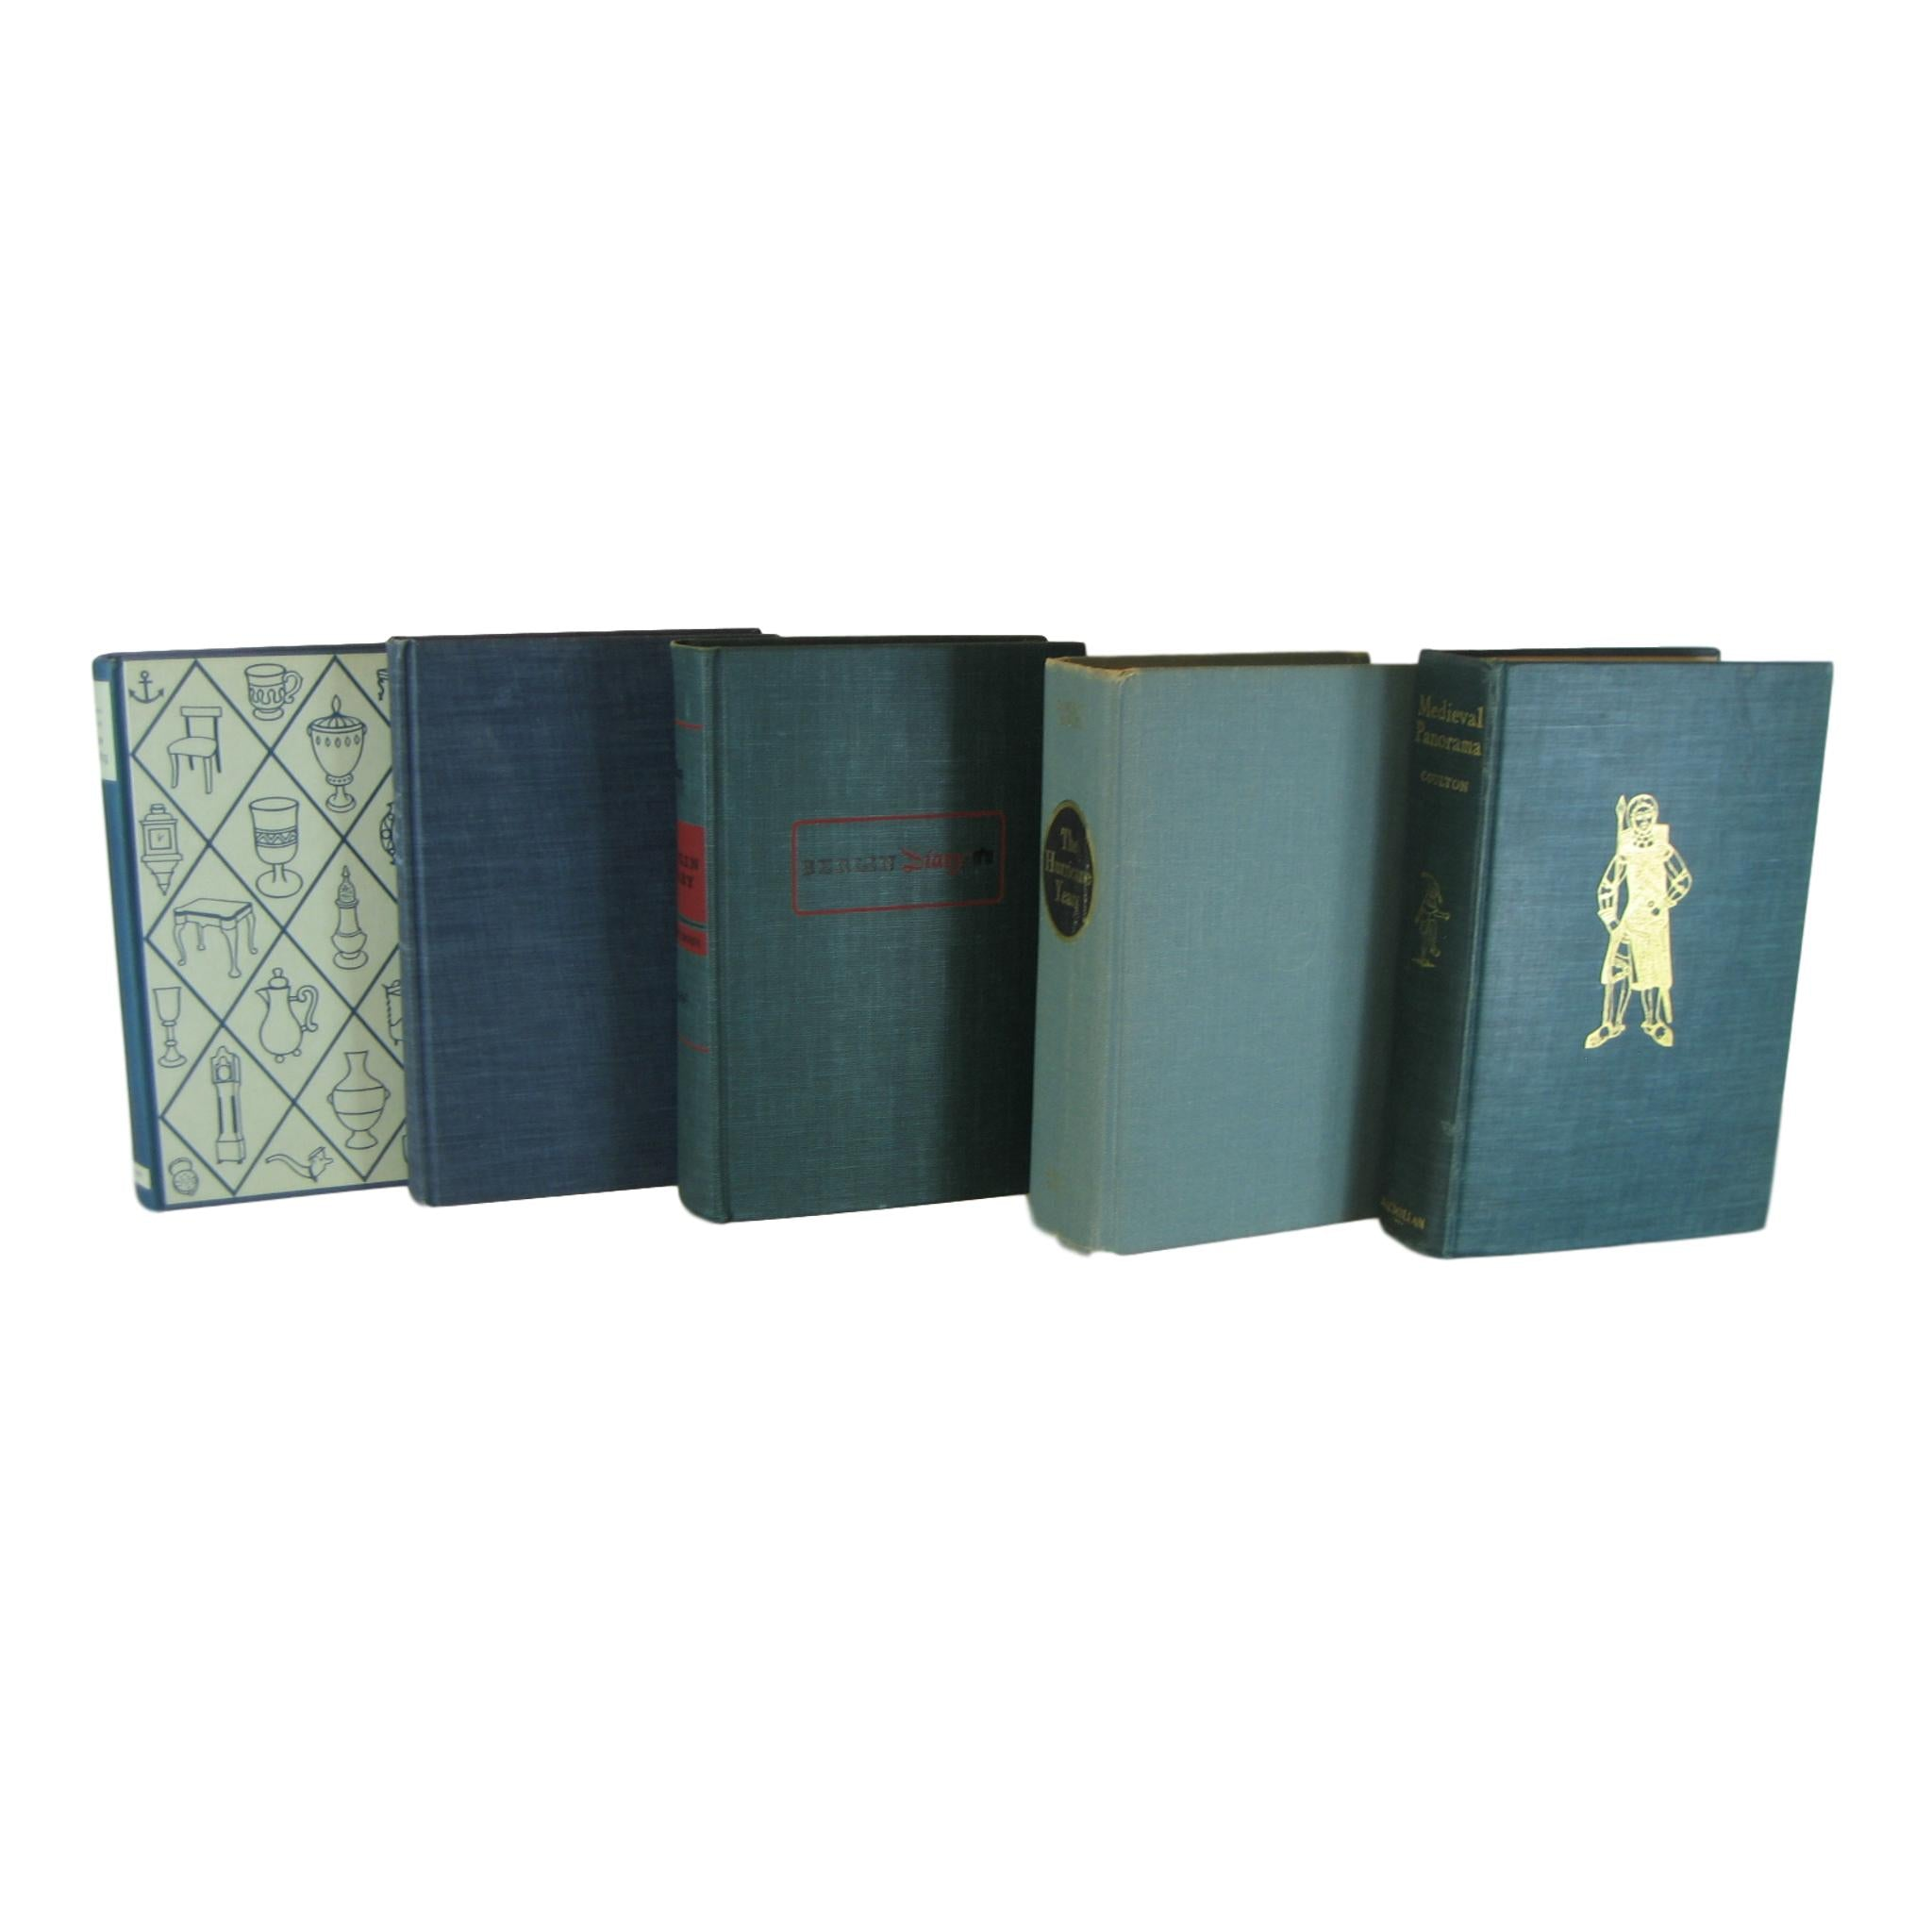 Green Decorative Books for Decor,  S/5 - Decades of Vintage